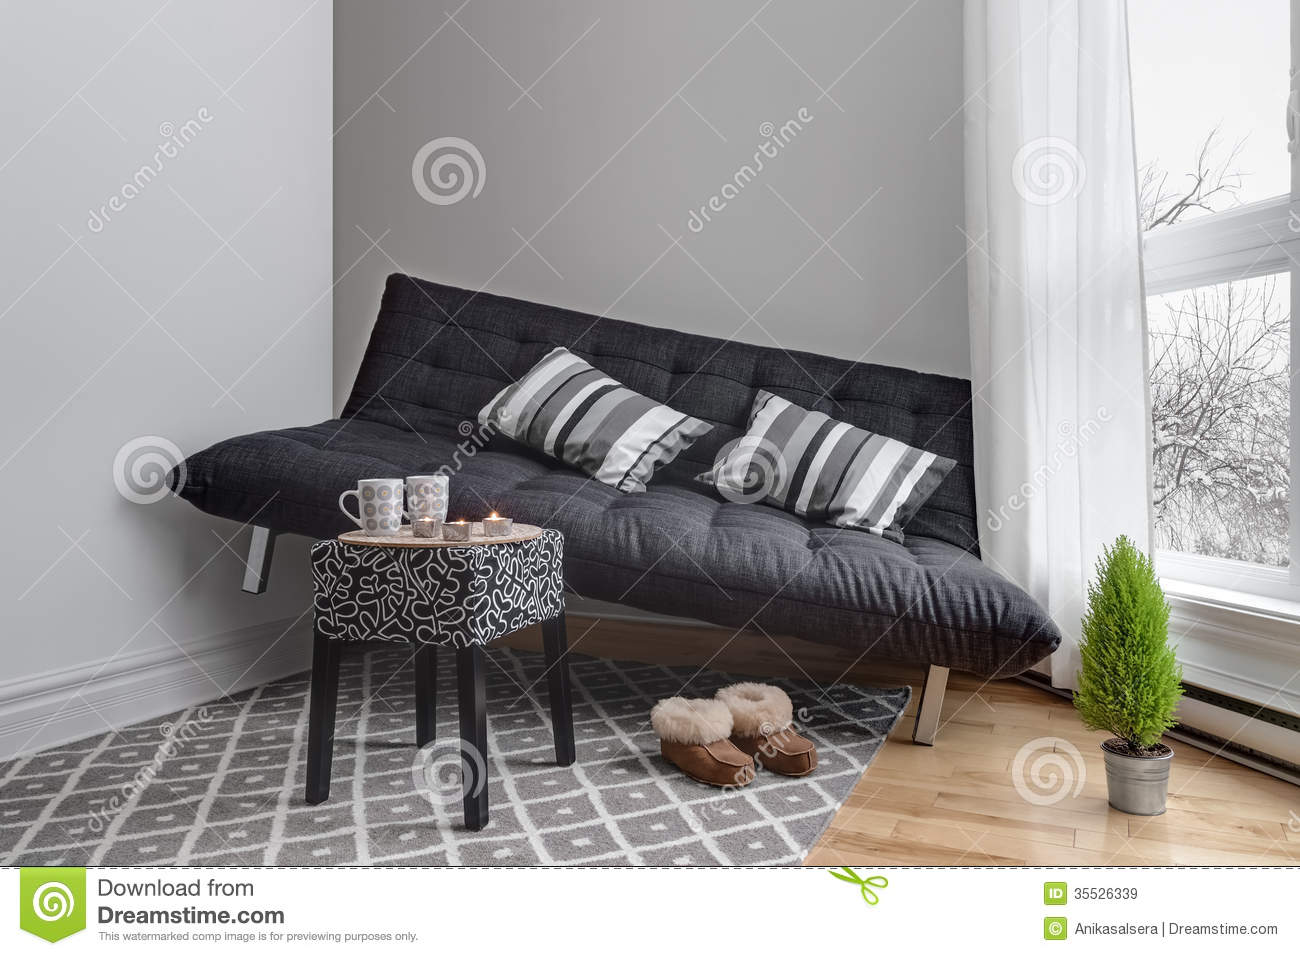 Lack of space in the living room